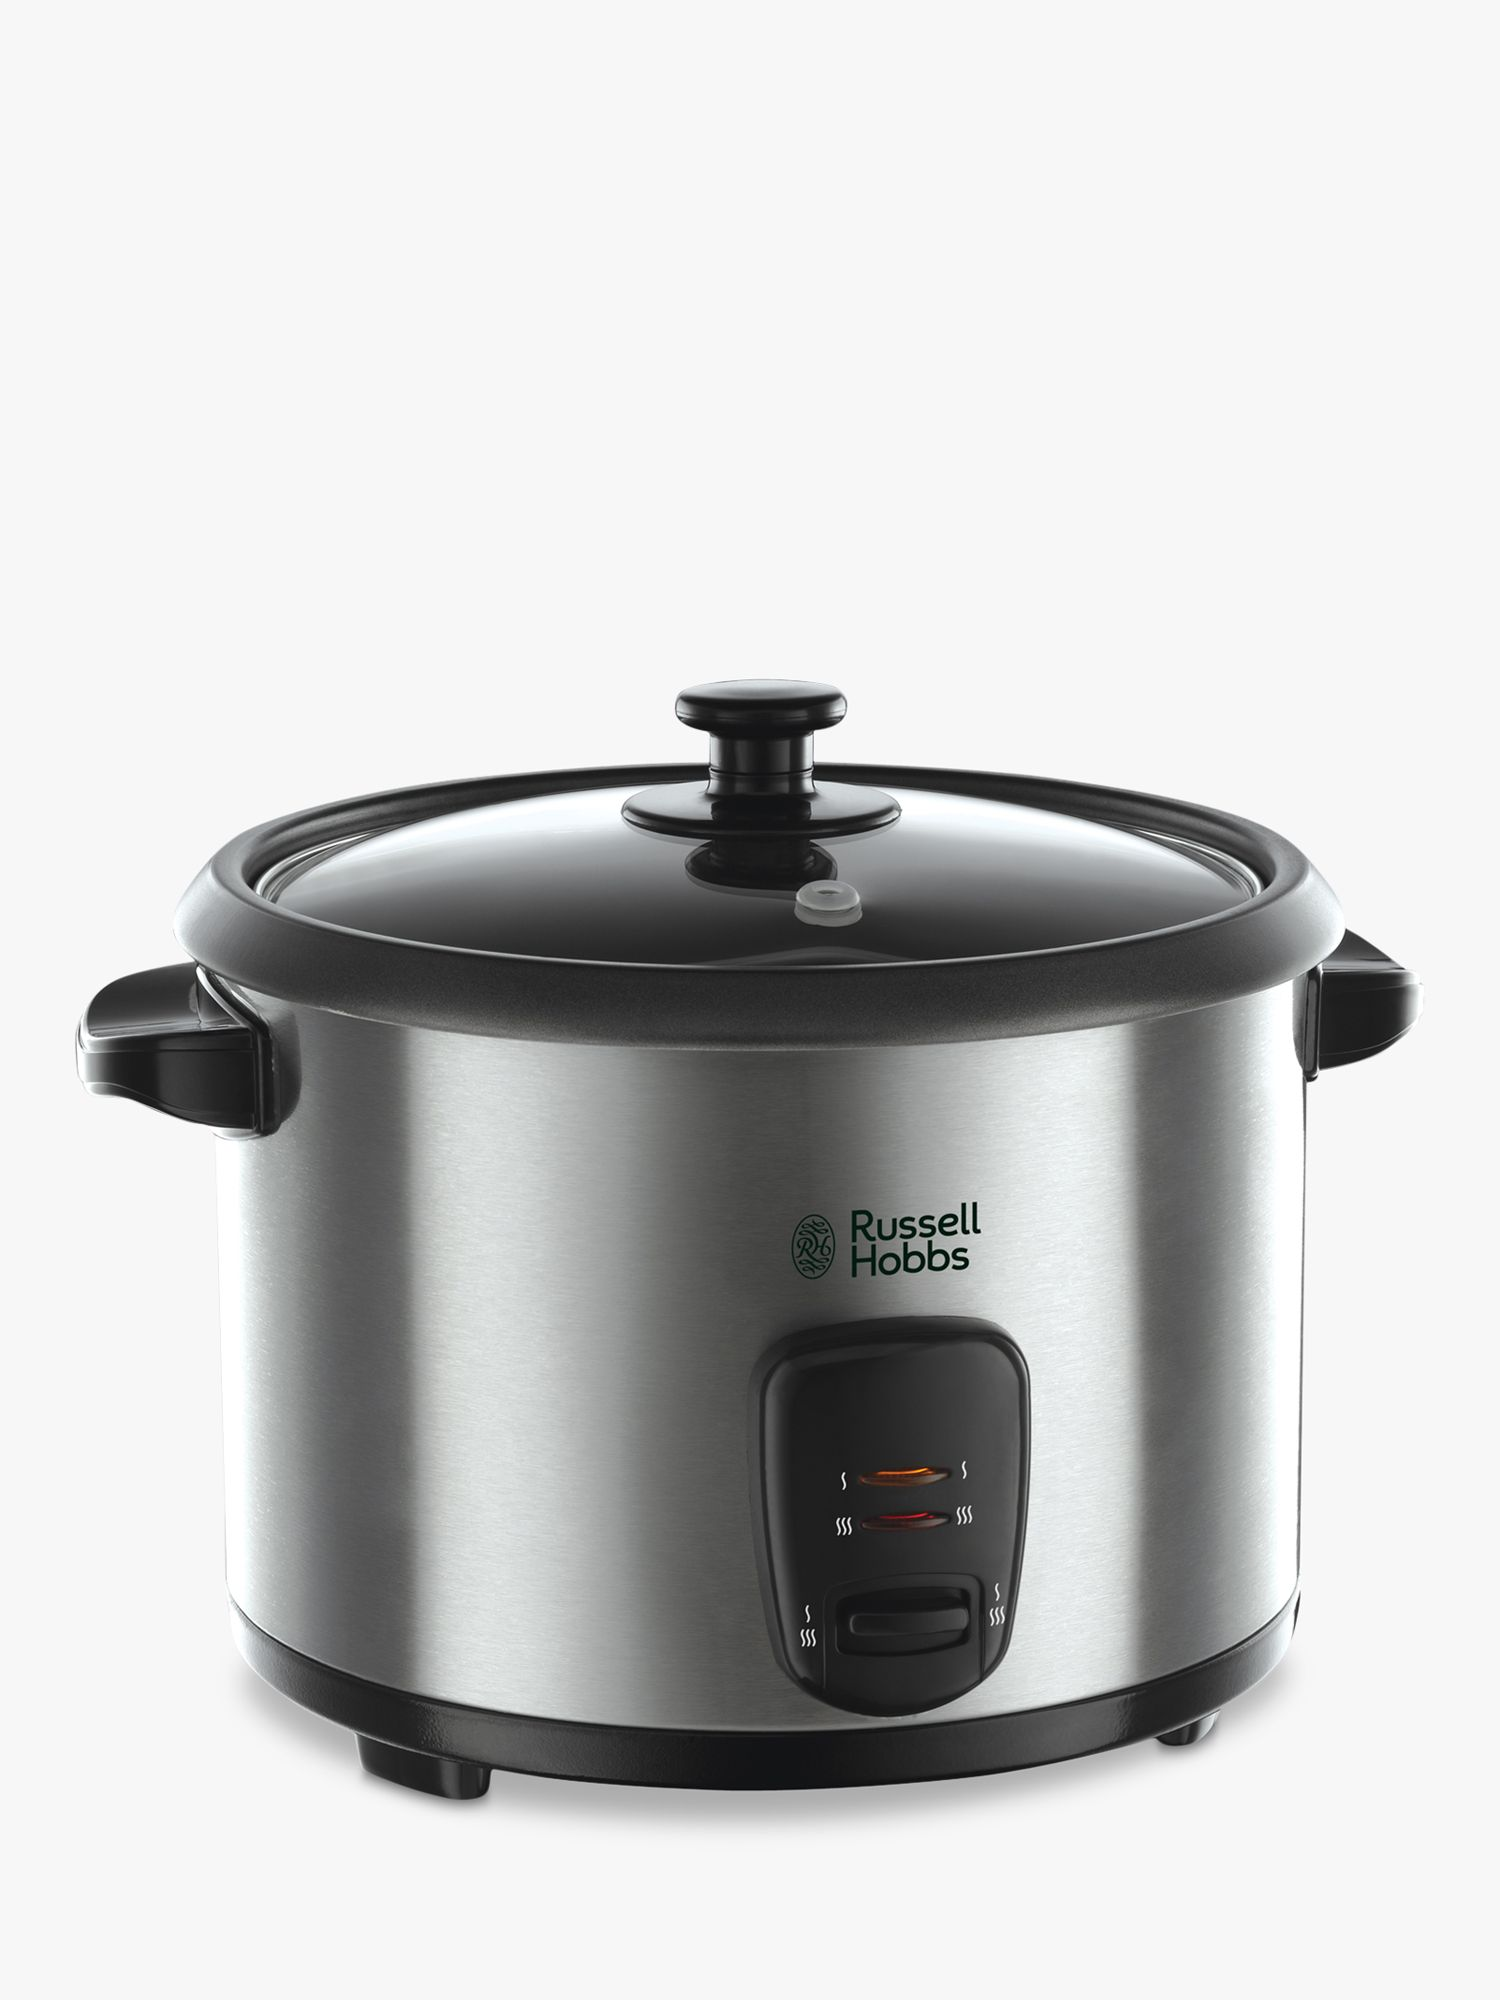 Russell Hobbs Russell Hobbs 19750 Cook at Home Rice Cooker and Steamer